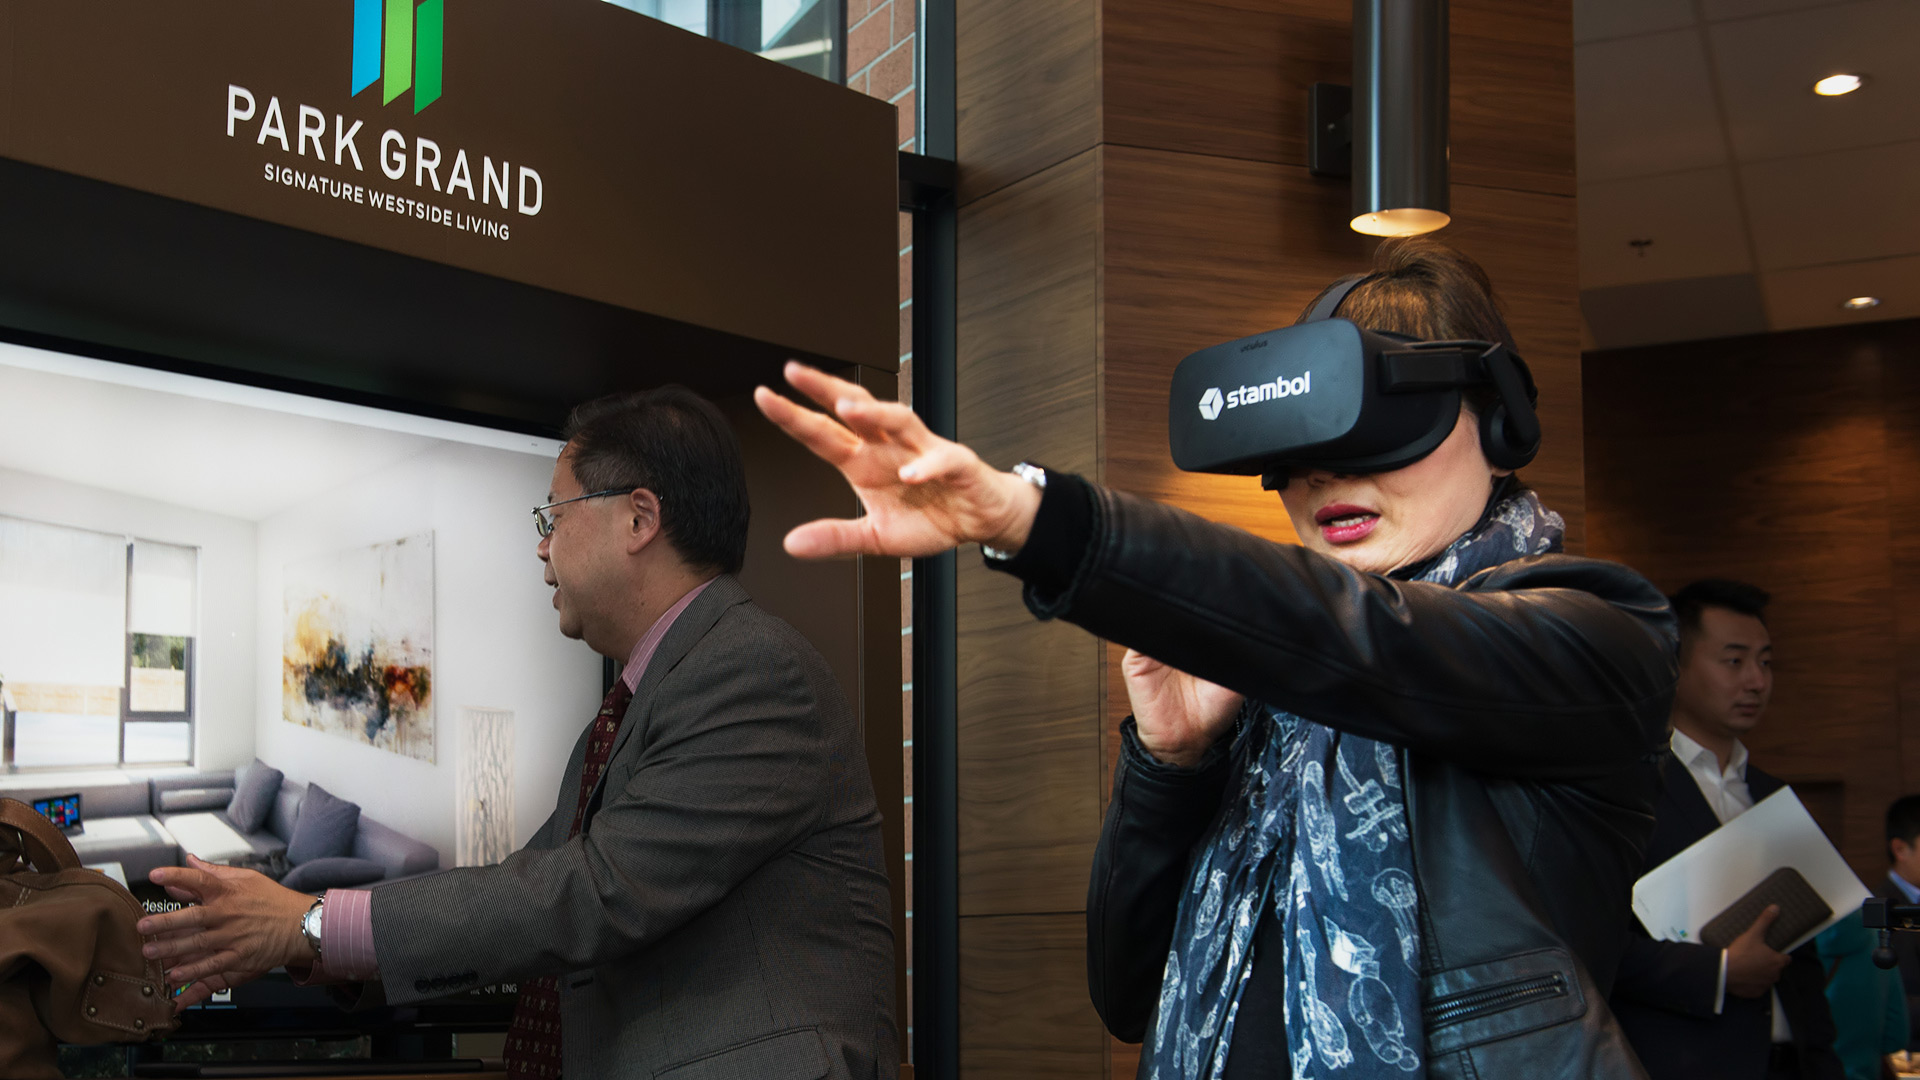 woman trying Park Grand for real estate in virtual reality by Stambol Studios